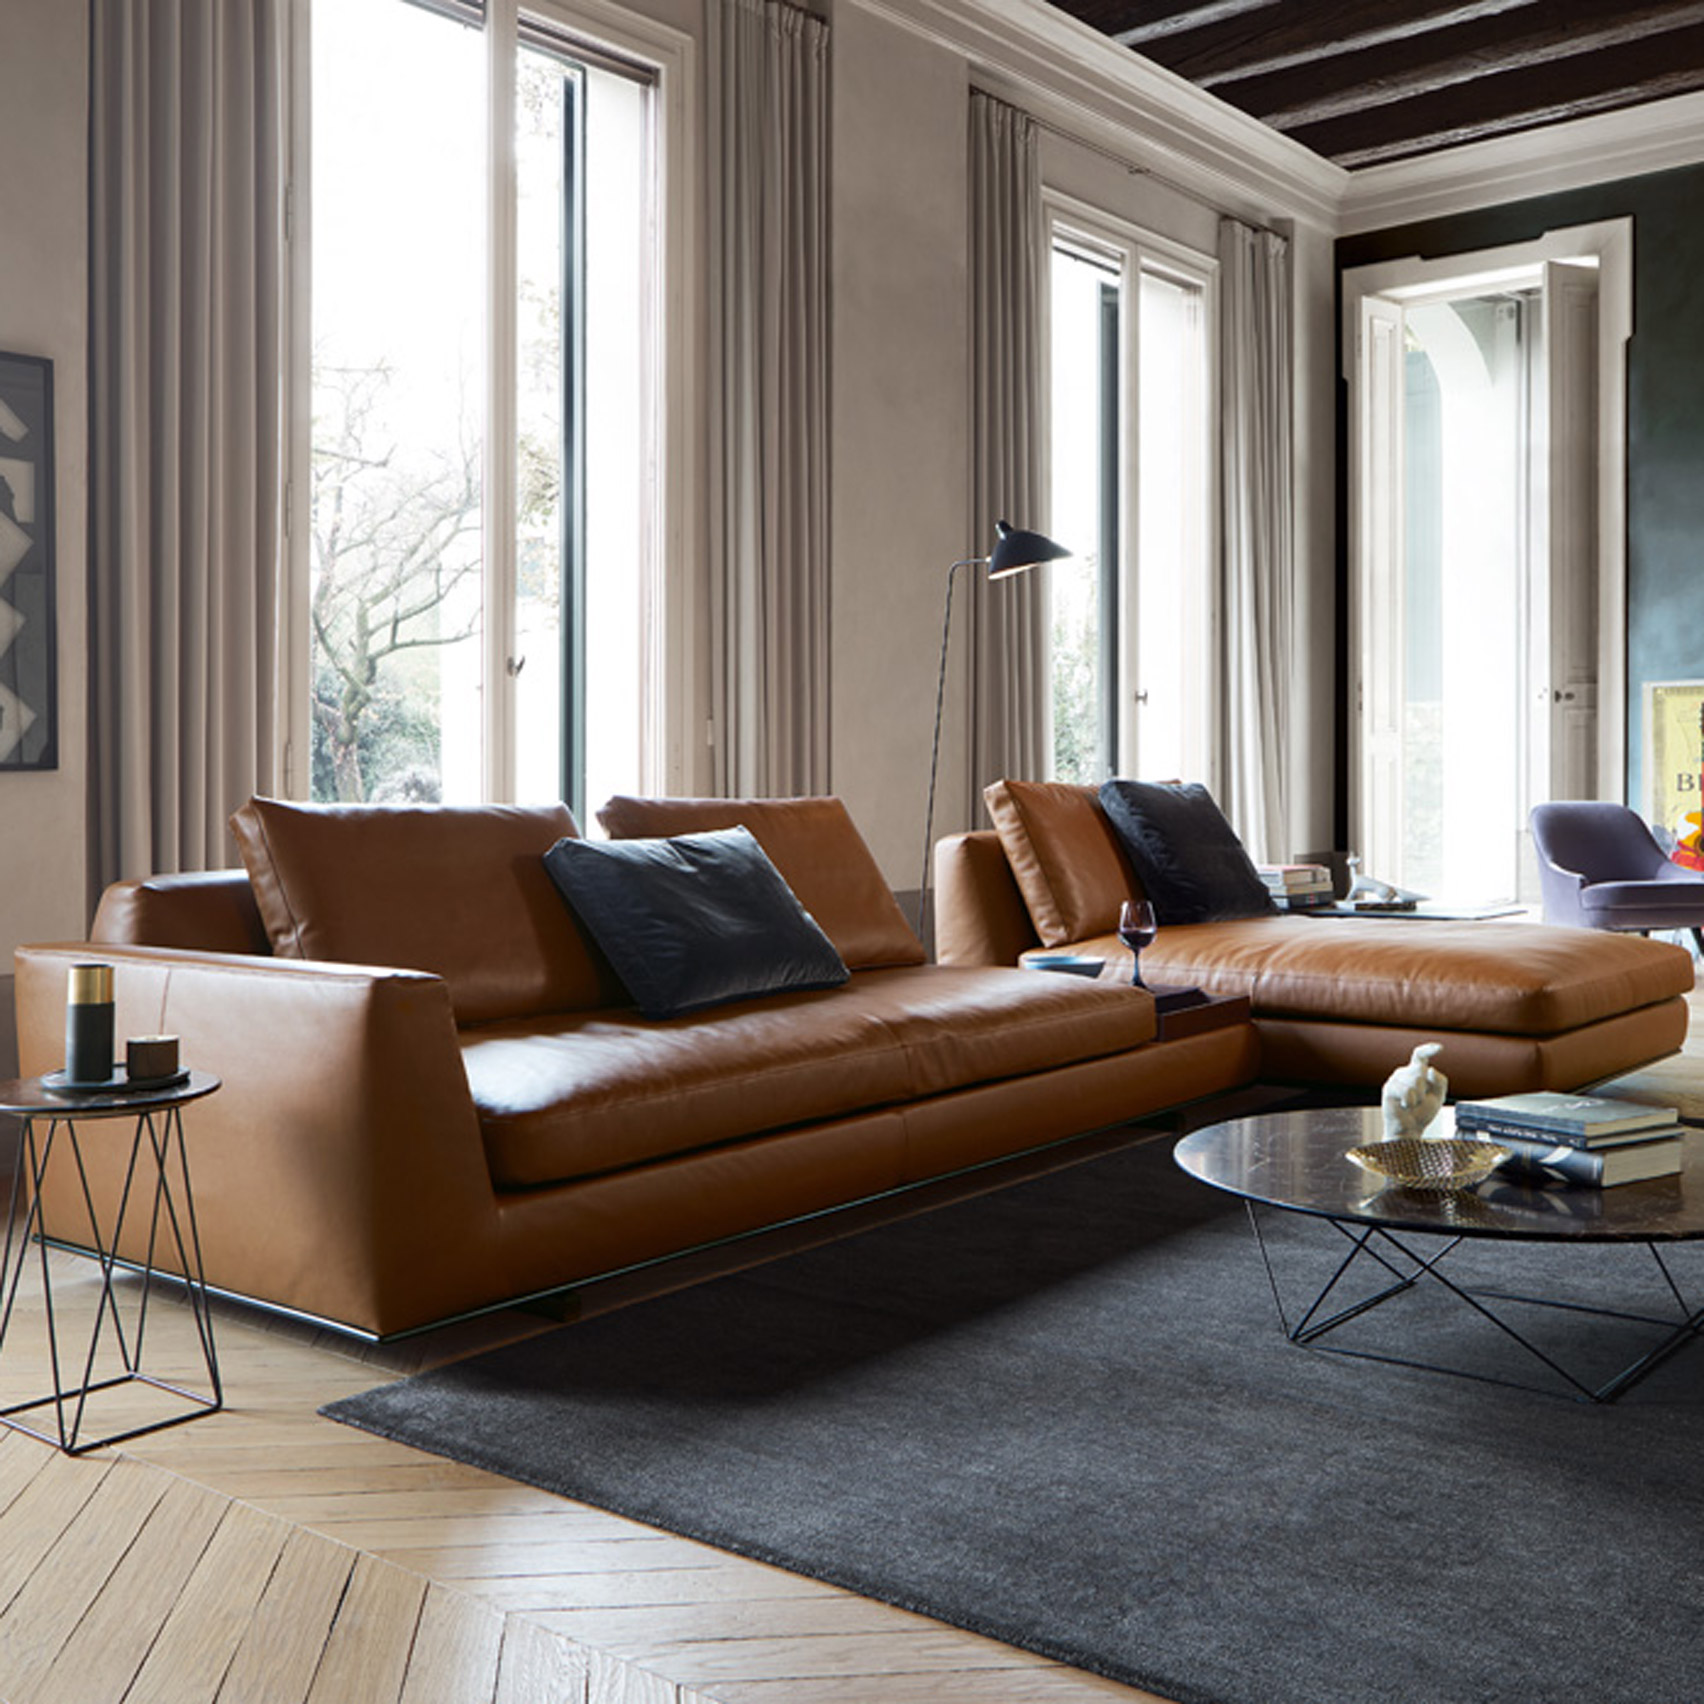 Knoll Sofa Walter Knoll To Present Sofa With Integrated Accessories At Milan